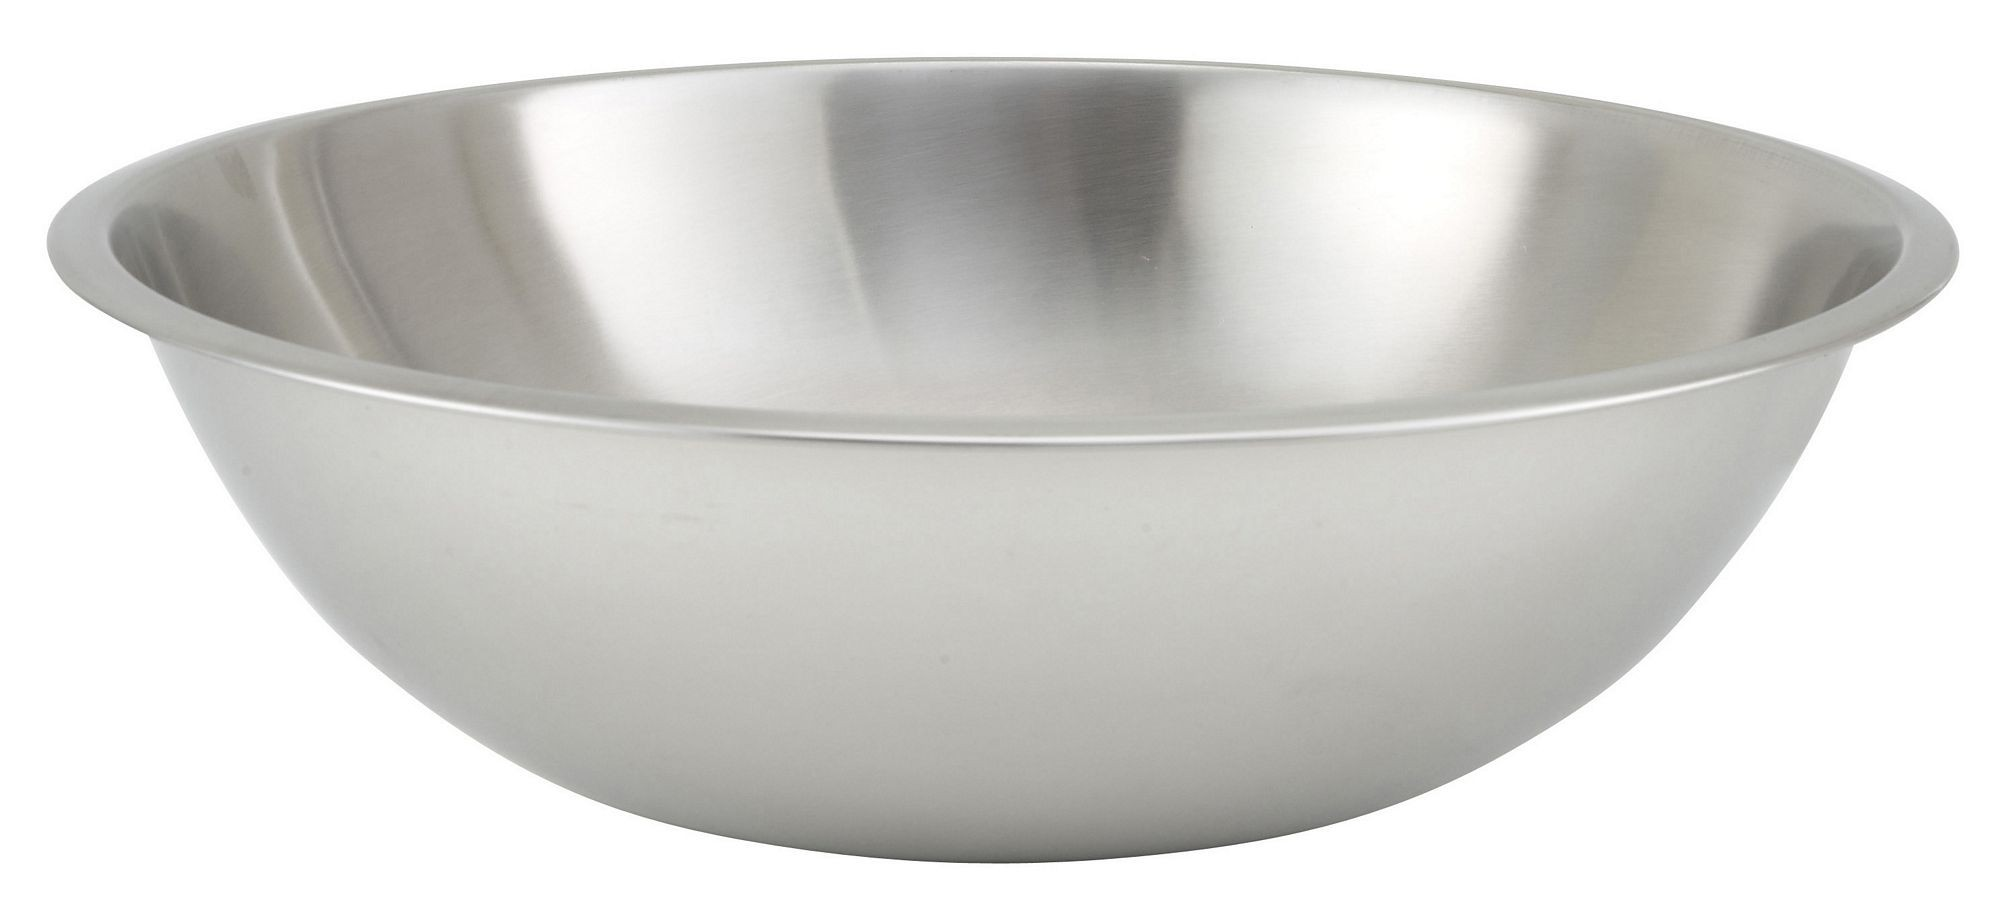 Winco MXHV-2000 Heavy Duty Stainless Steel 20 Qt Mixing Bowl